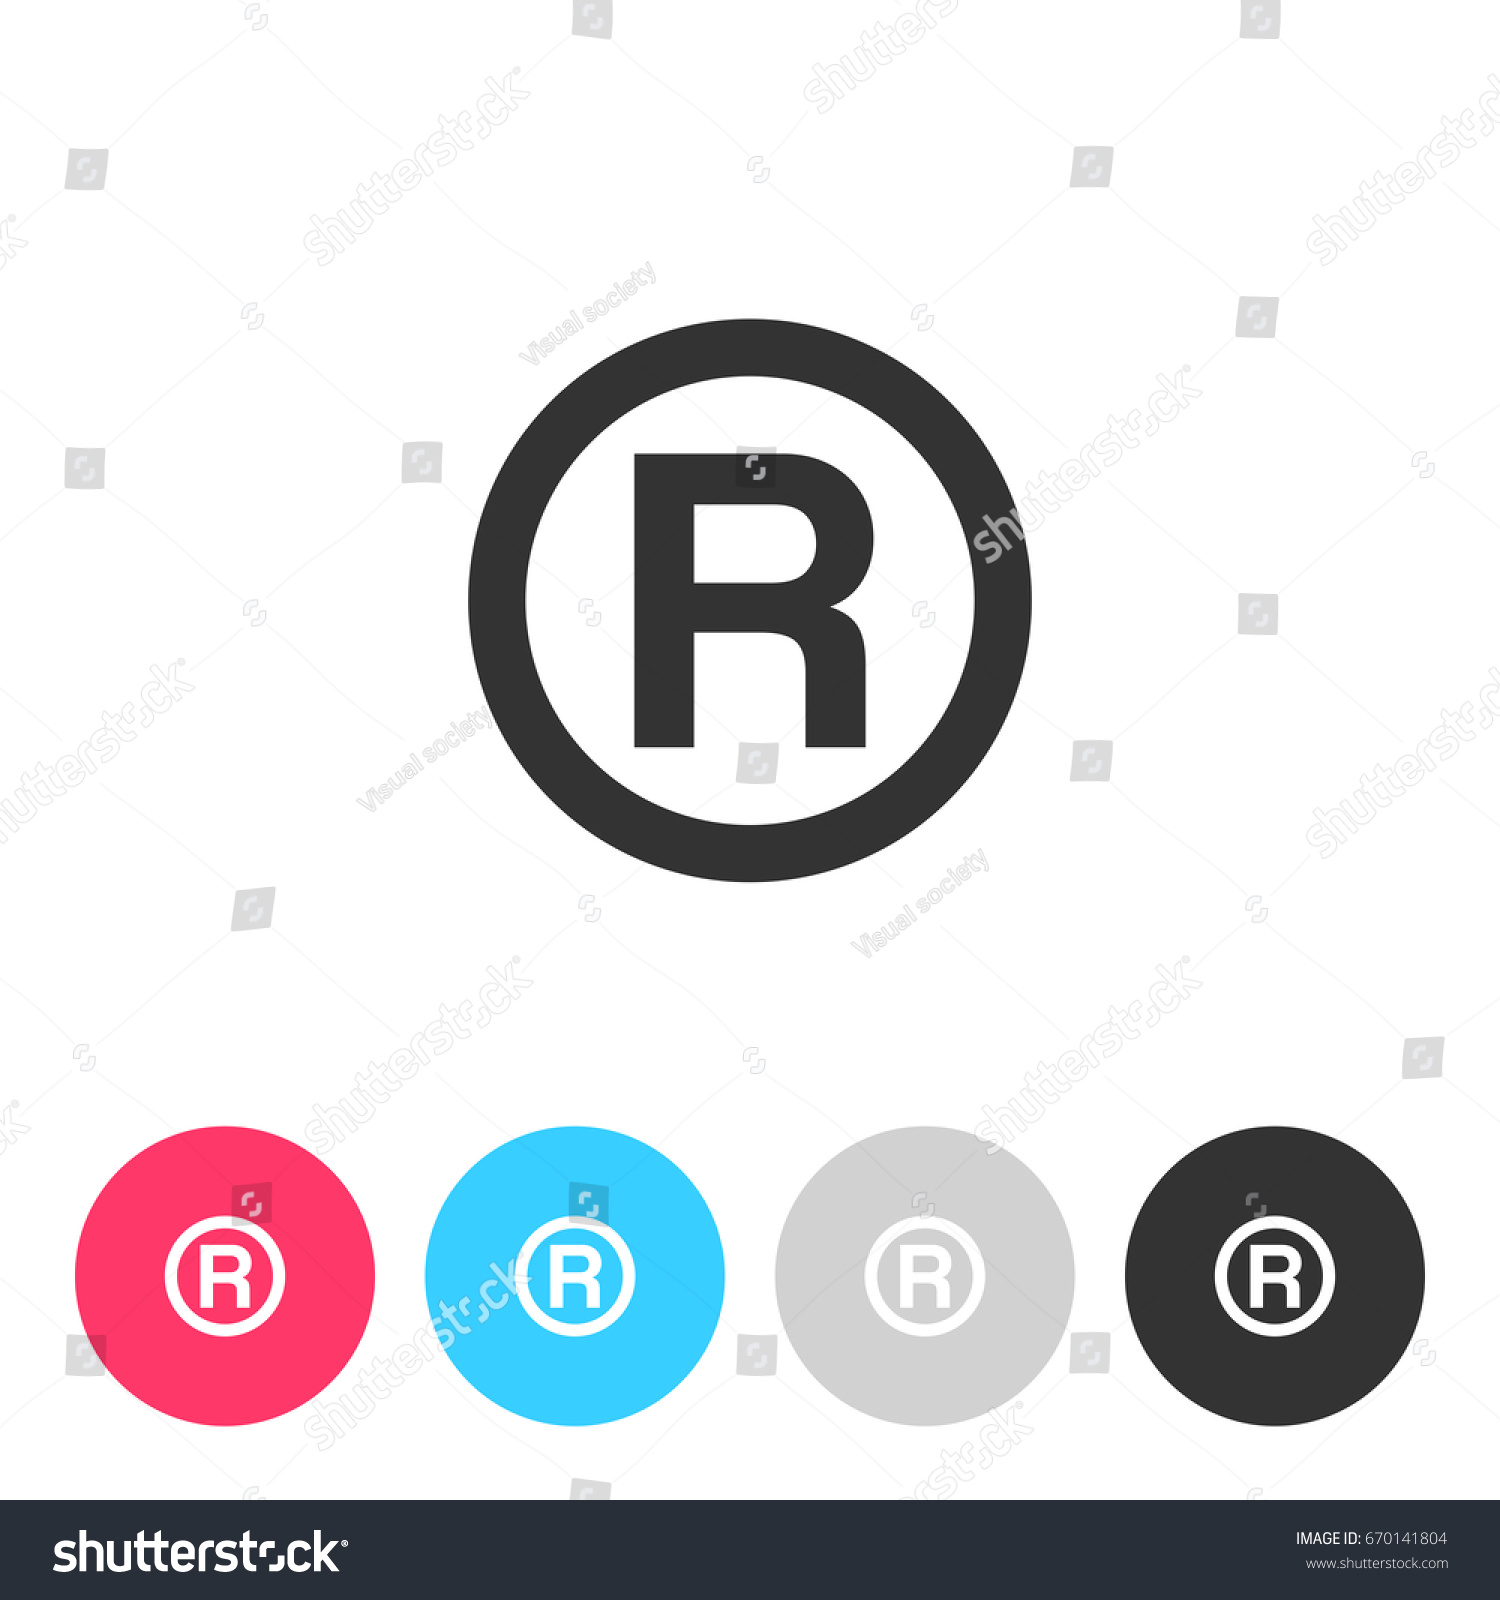 R registered trademark symbol isolated on stock vector 670141804 r registered trademark symbol isolated on white background button with symbol for your design buycottarizona